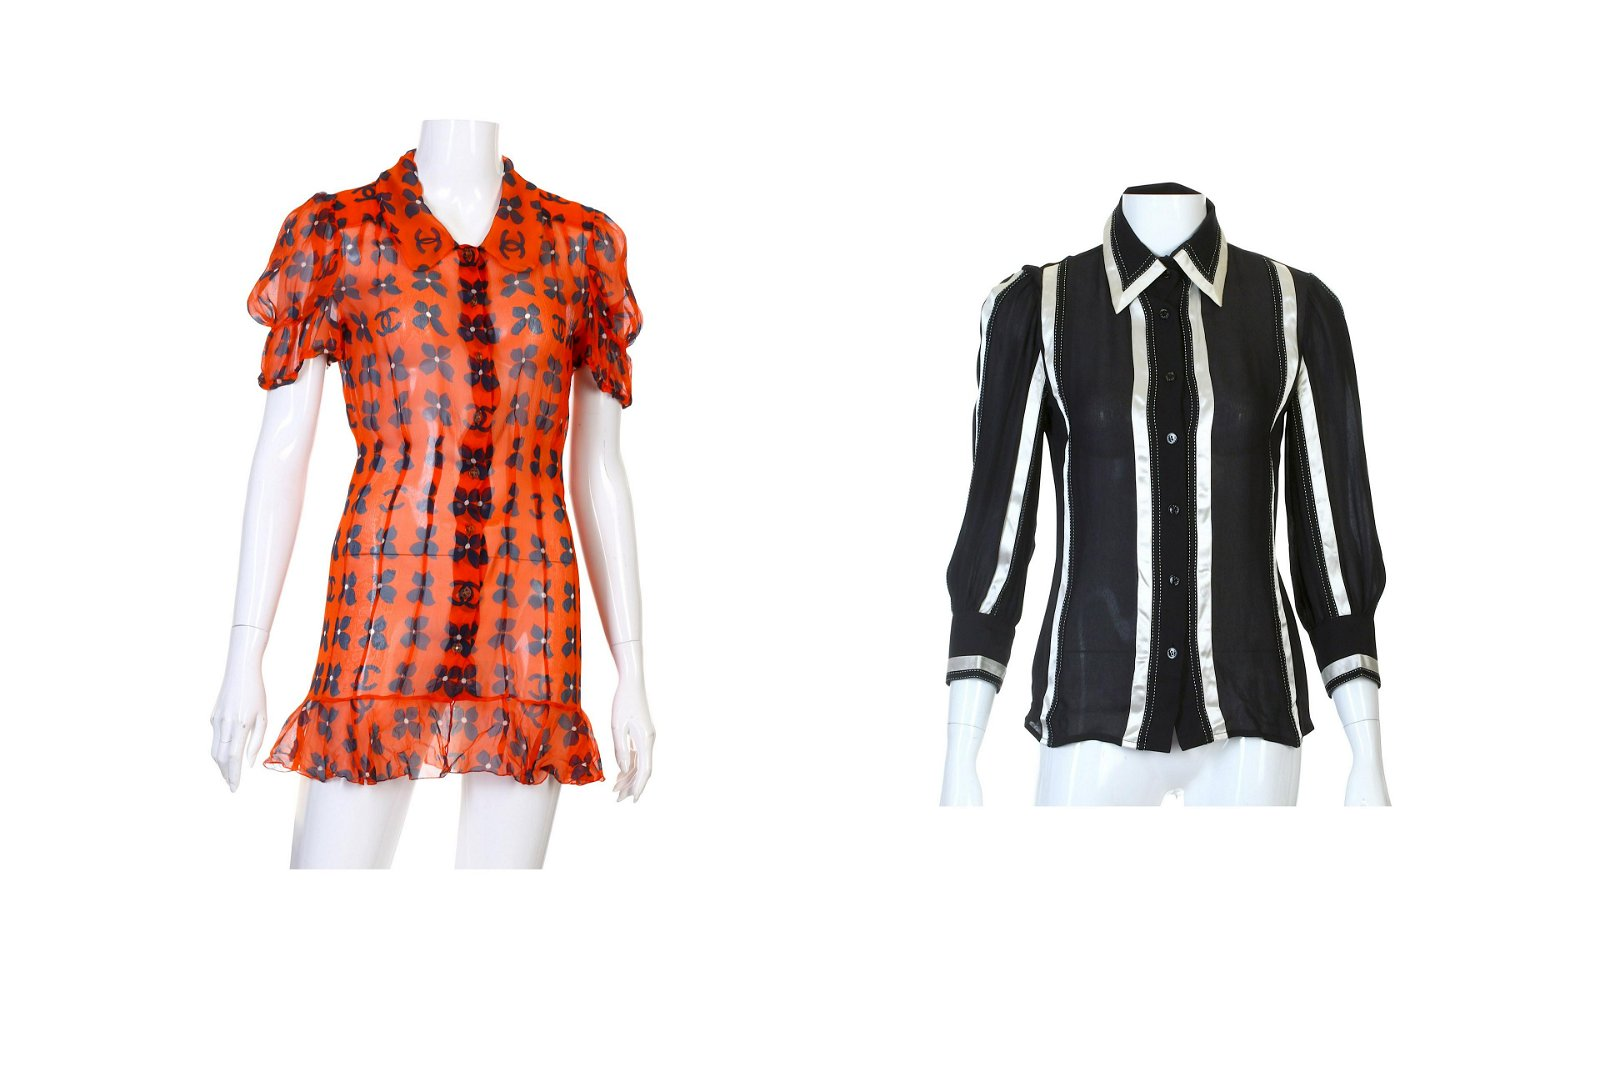 Two Pieces of Chanel Silk Shirts